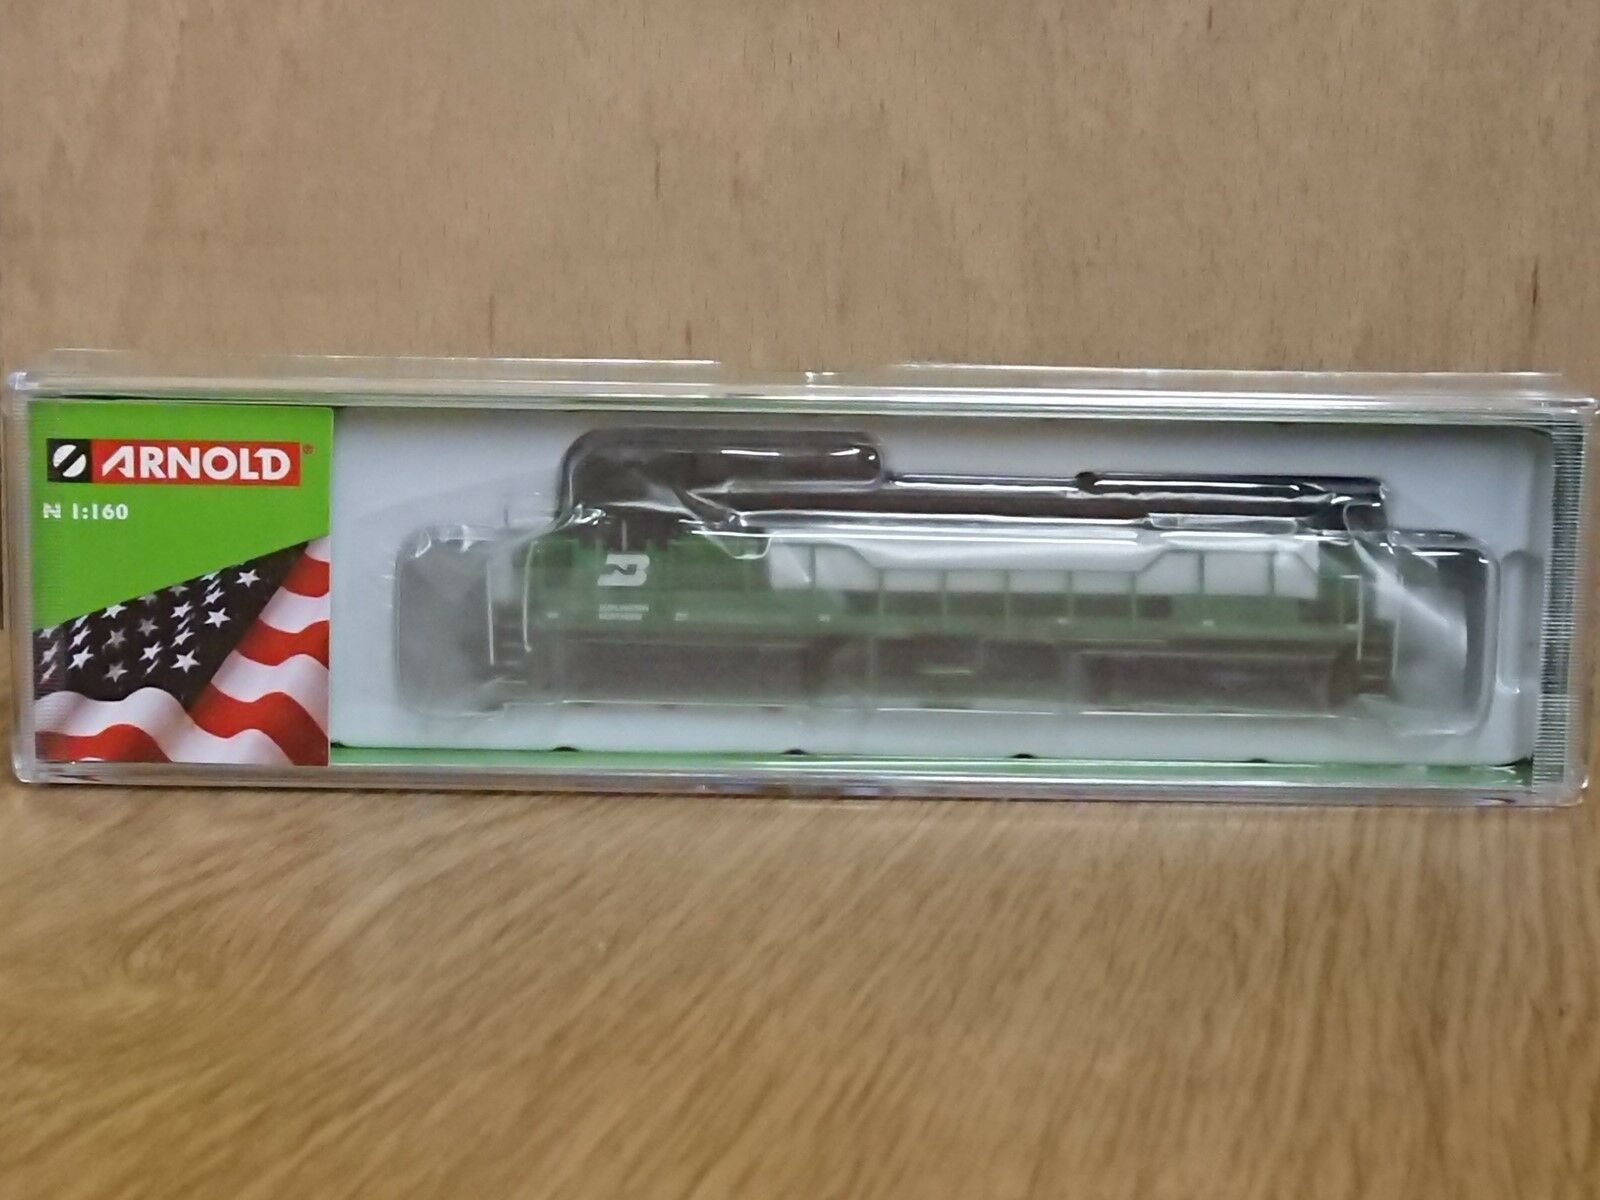 Hornby Arnold HN2315 N gauge Diesel Electric Loco GE U28C Burlington N. No. 5656